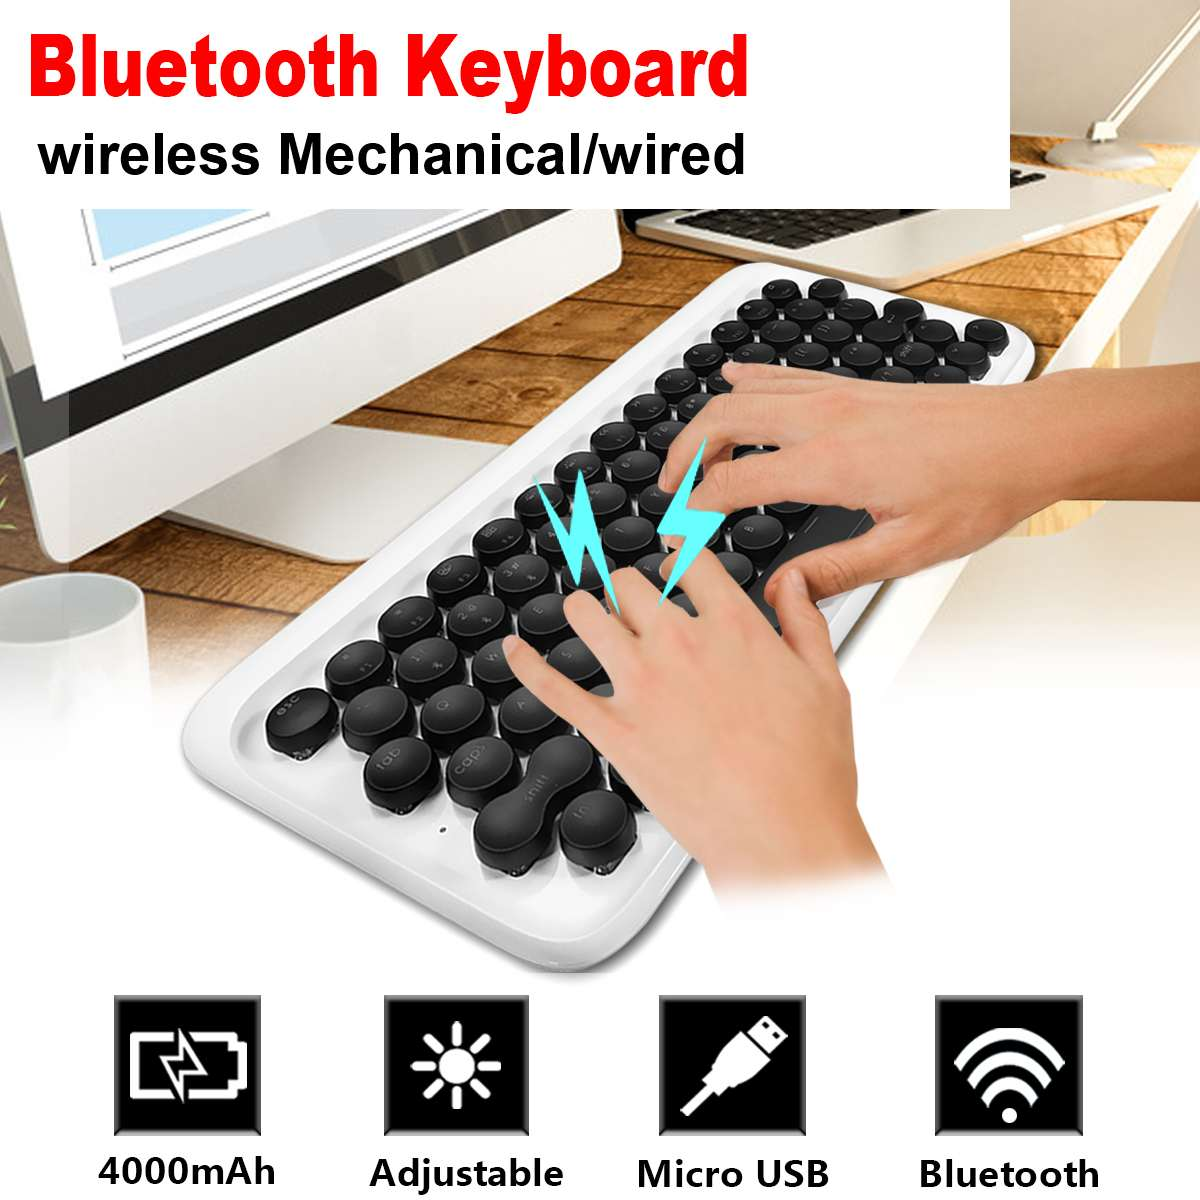 Wireless 78 Key Bluetooth Mechanical Backlit Keyboard Typewriter Mechanical Keyboard Wireless Keyboard oreka 8006 black pc full frame pc lens fashion sunglasses grey